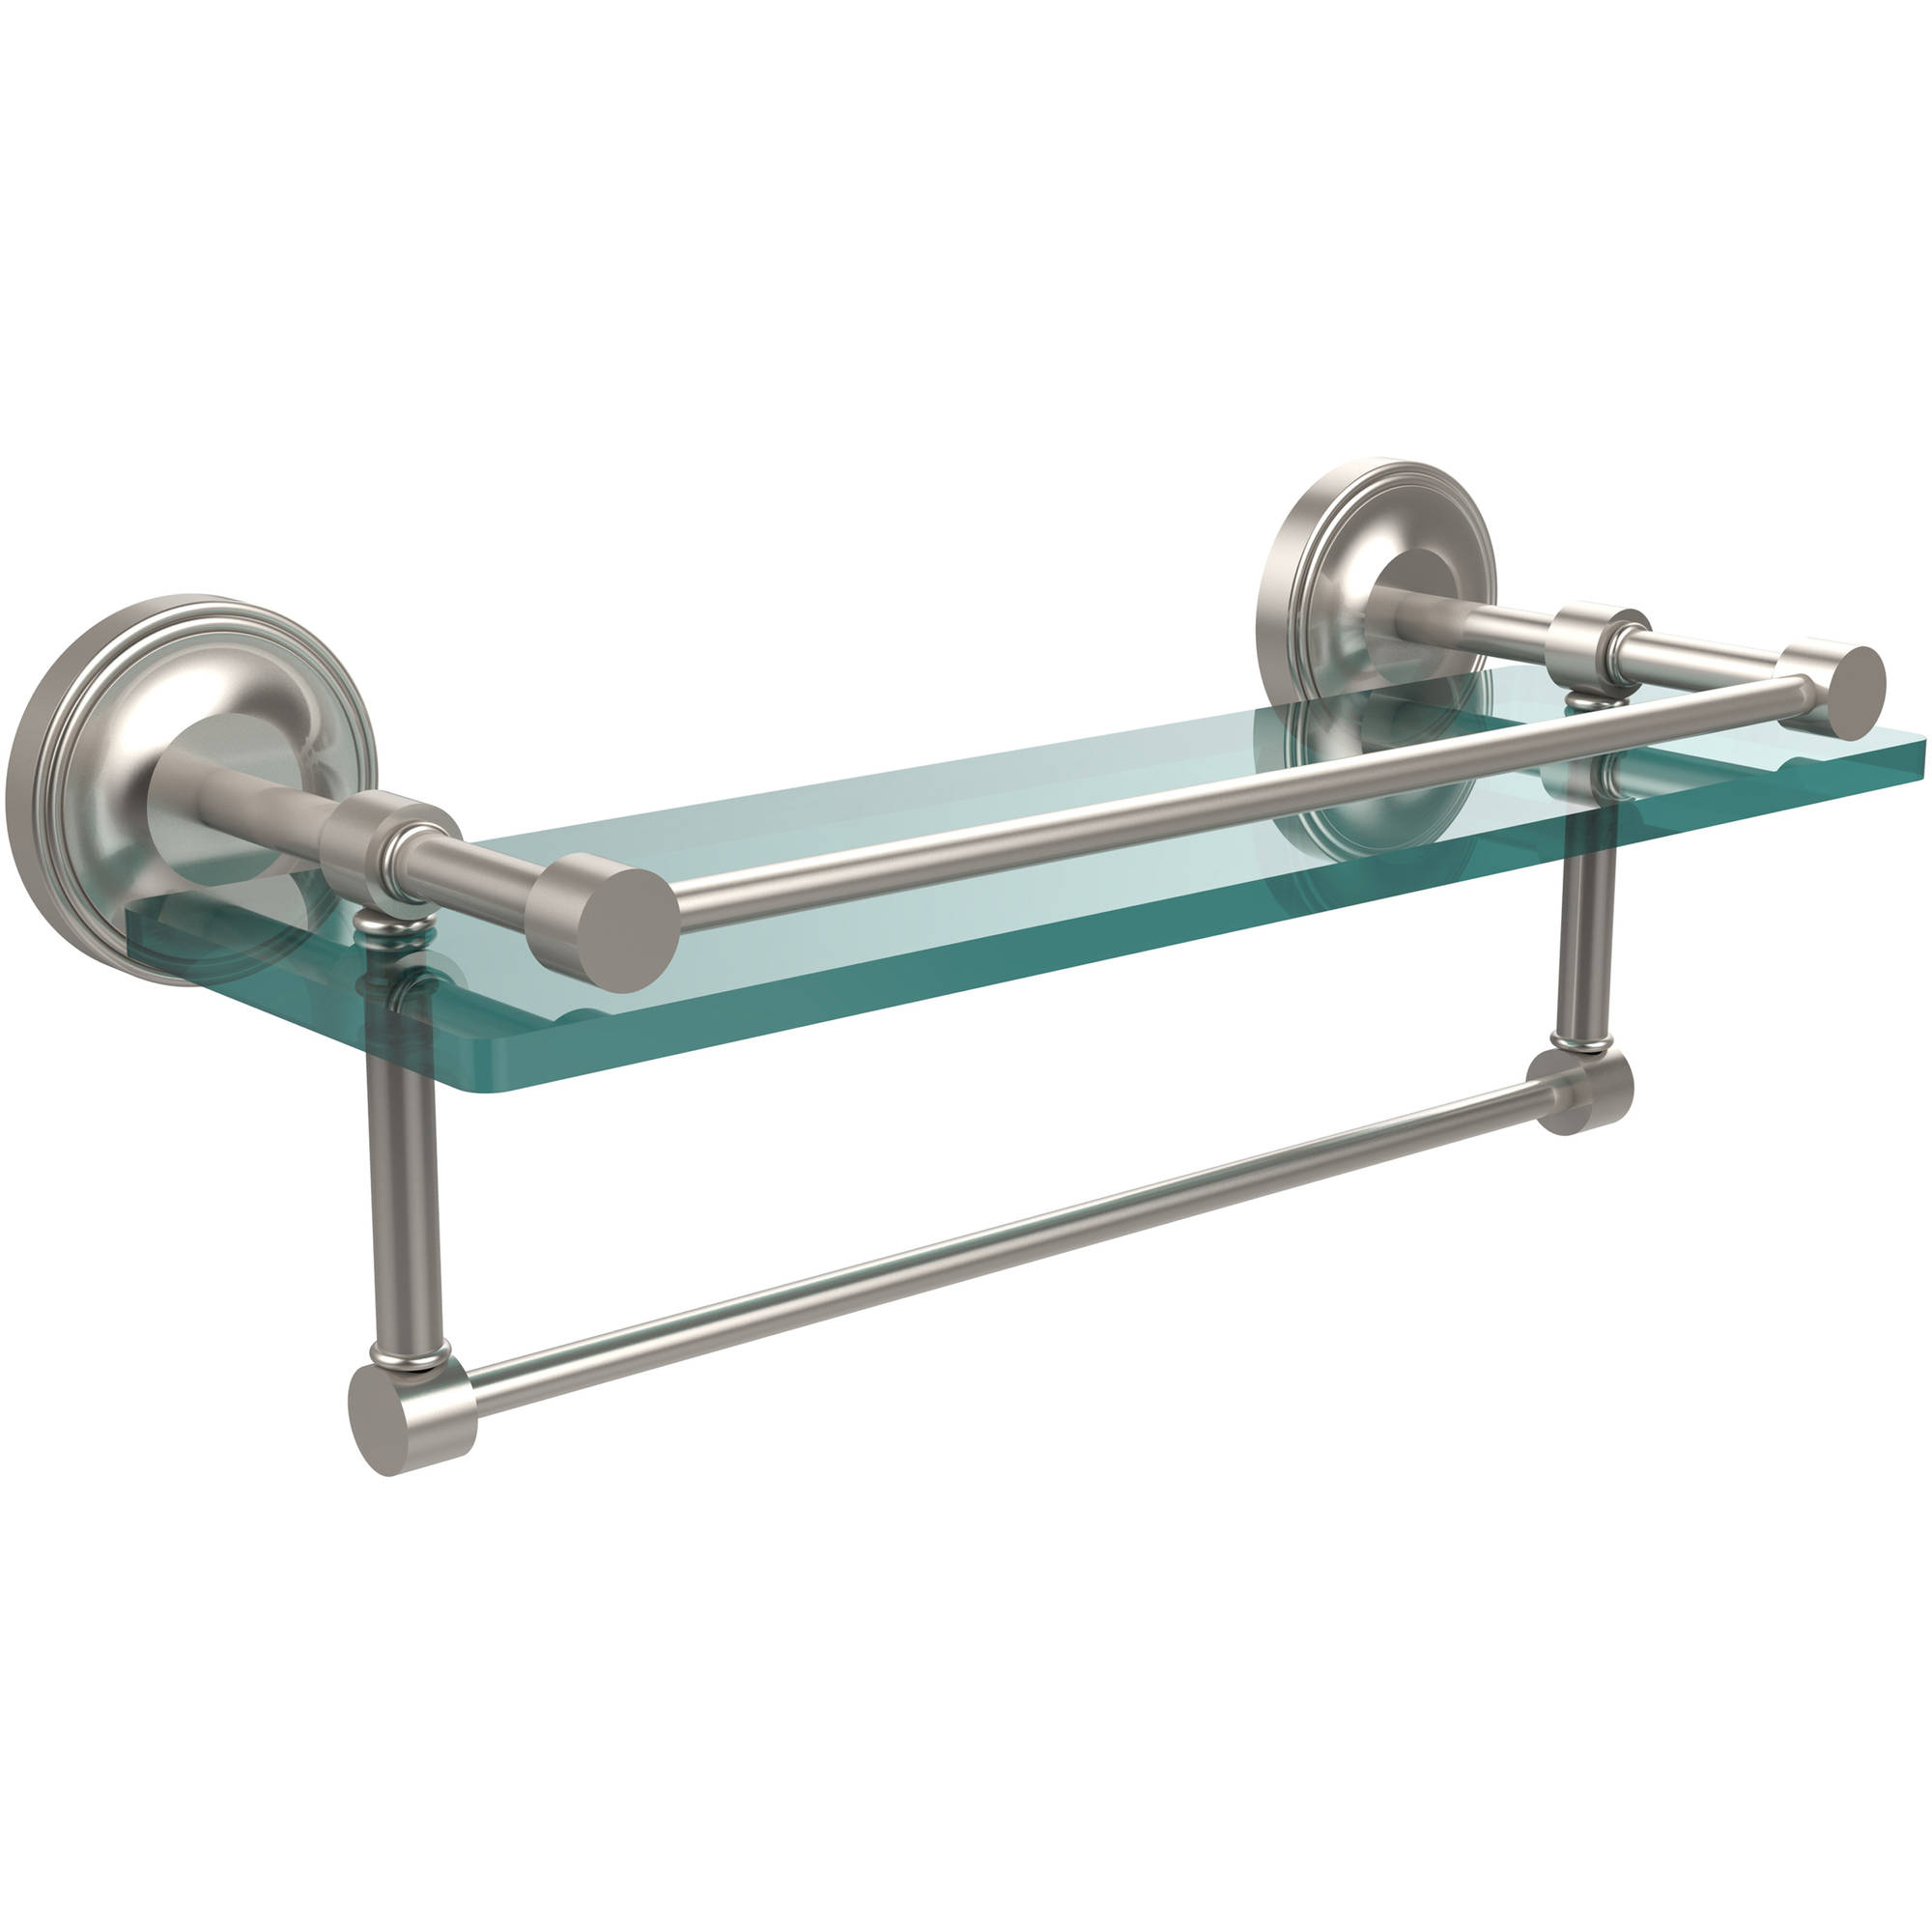 "16"" Gallery Glass Shelf with Towel Bar (Build to Order)"